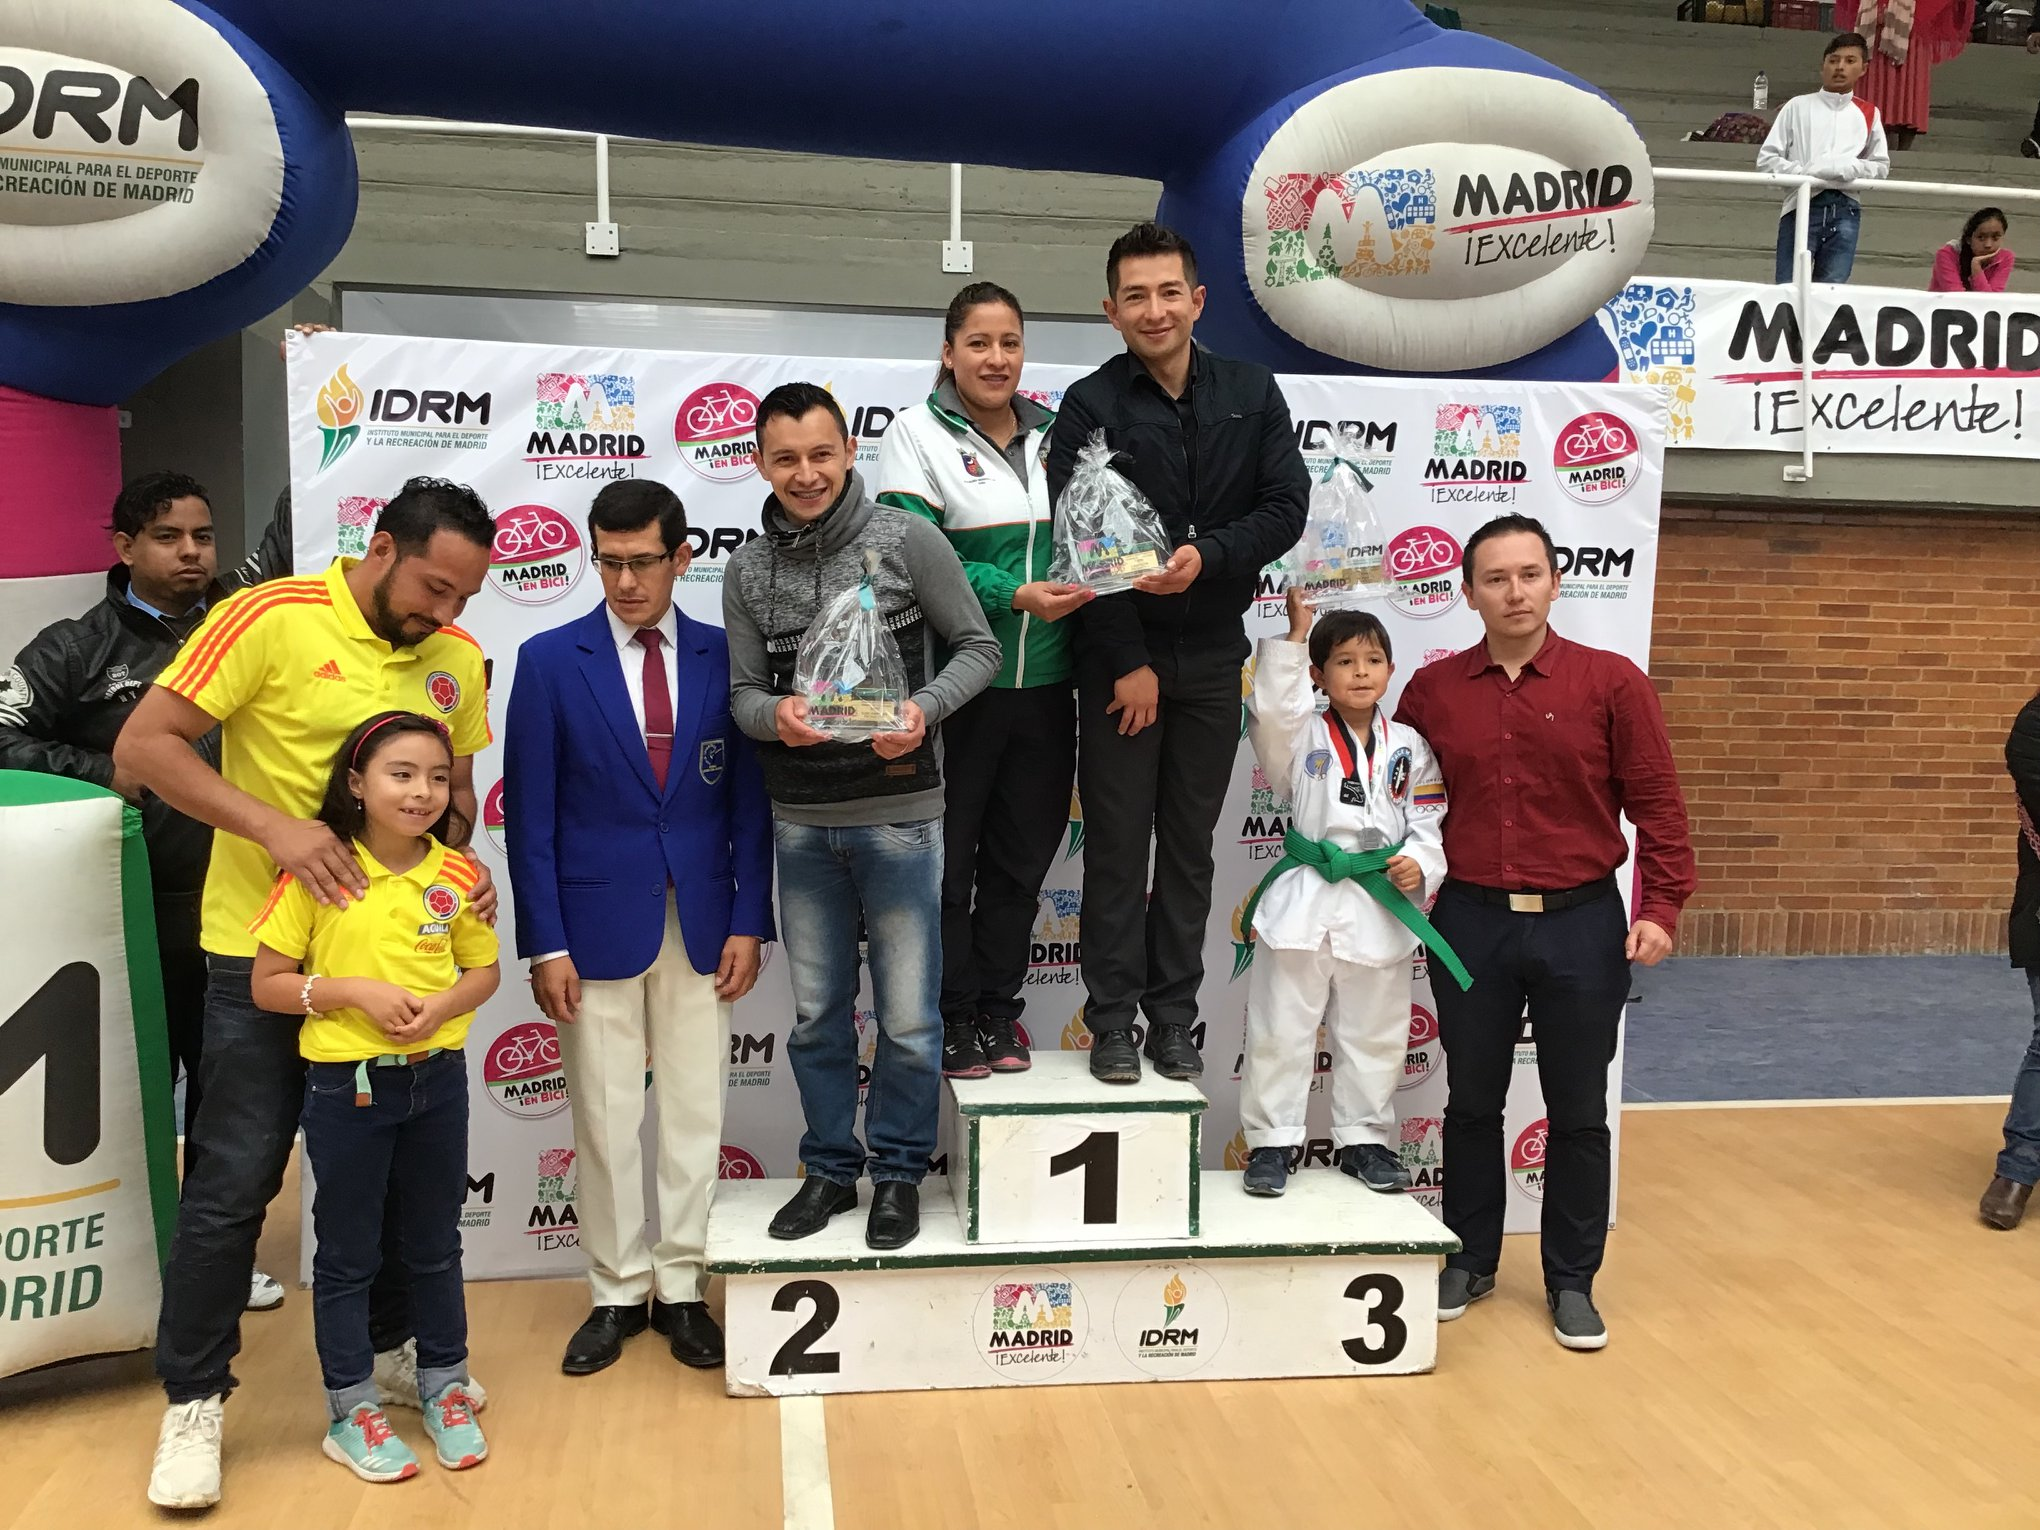 Taekwondo campeon deptal1